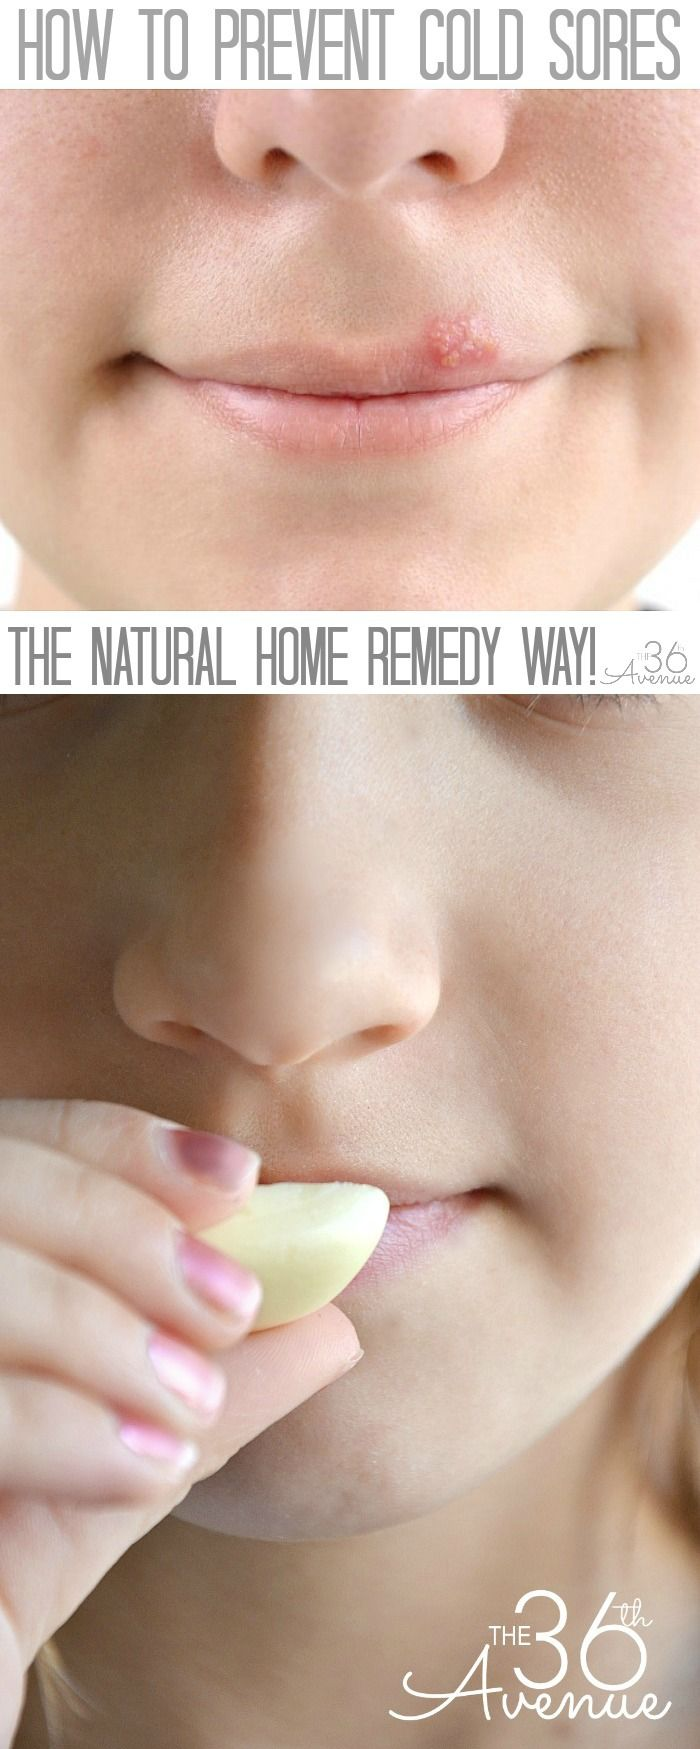 How to prevent COLD SORES at  The easy NATURAL HOME REMEDY way.. You want to pin this!